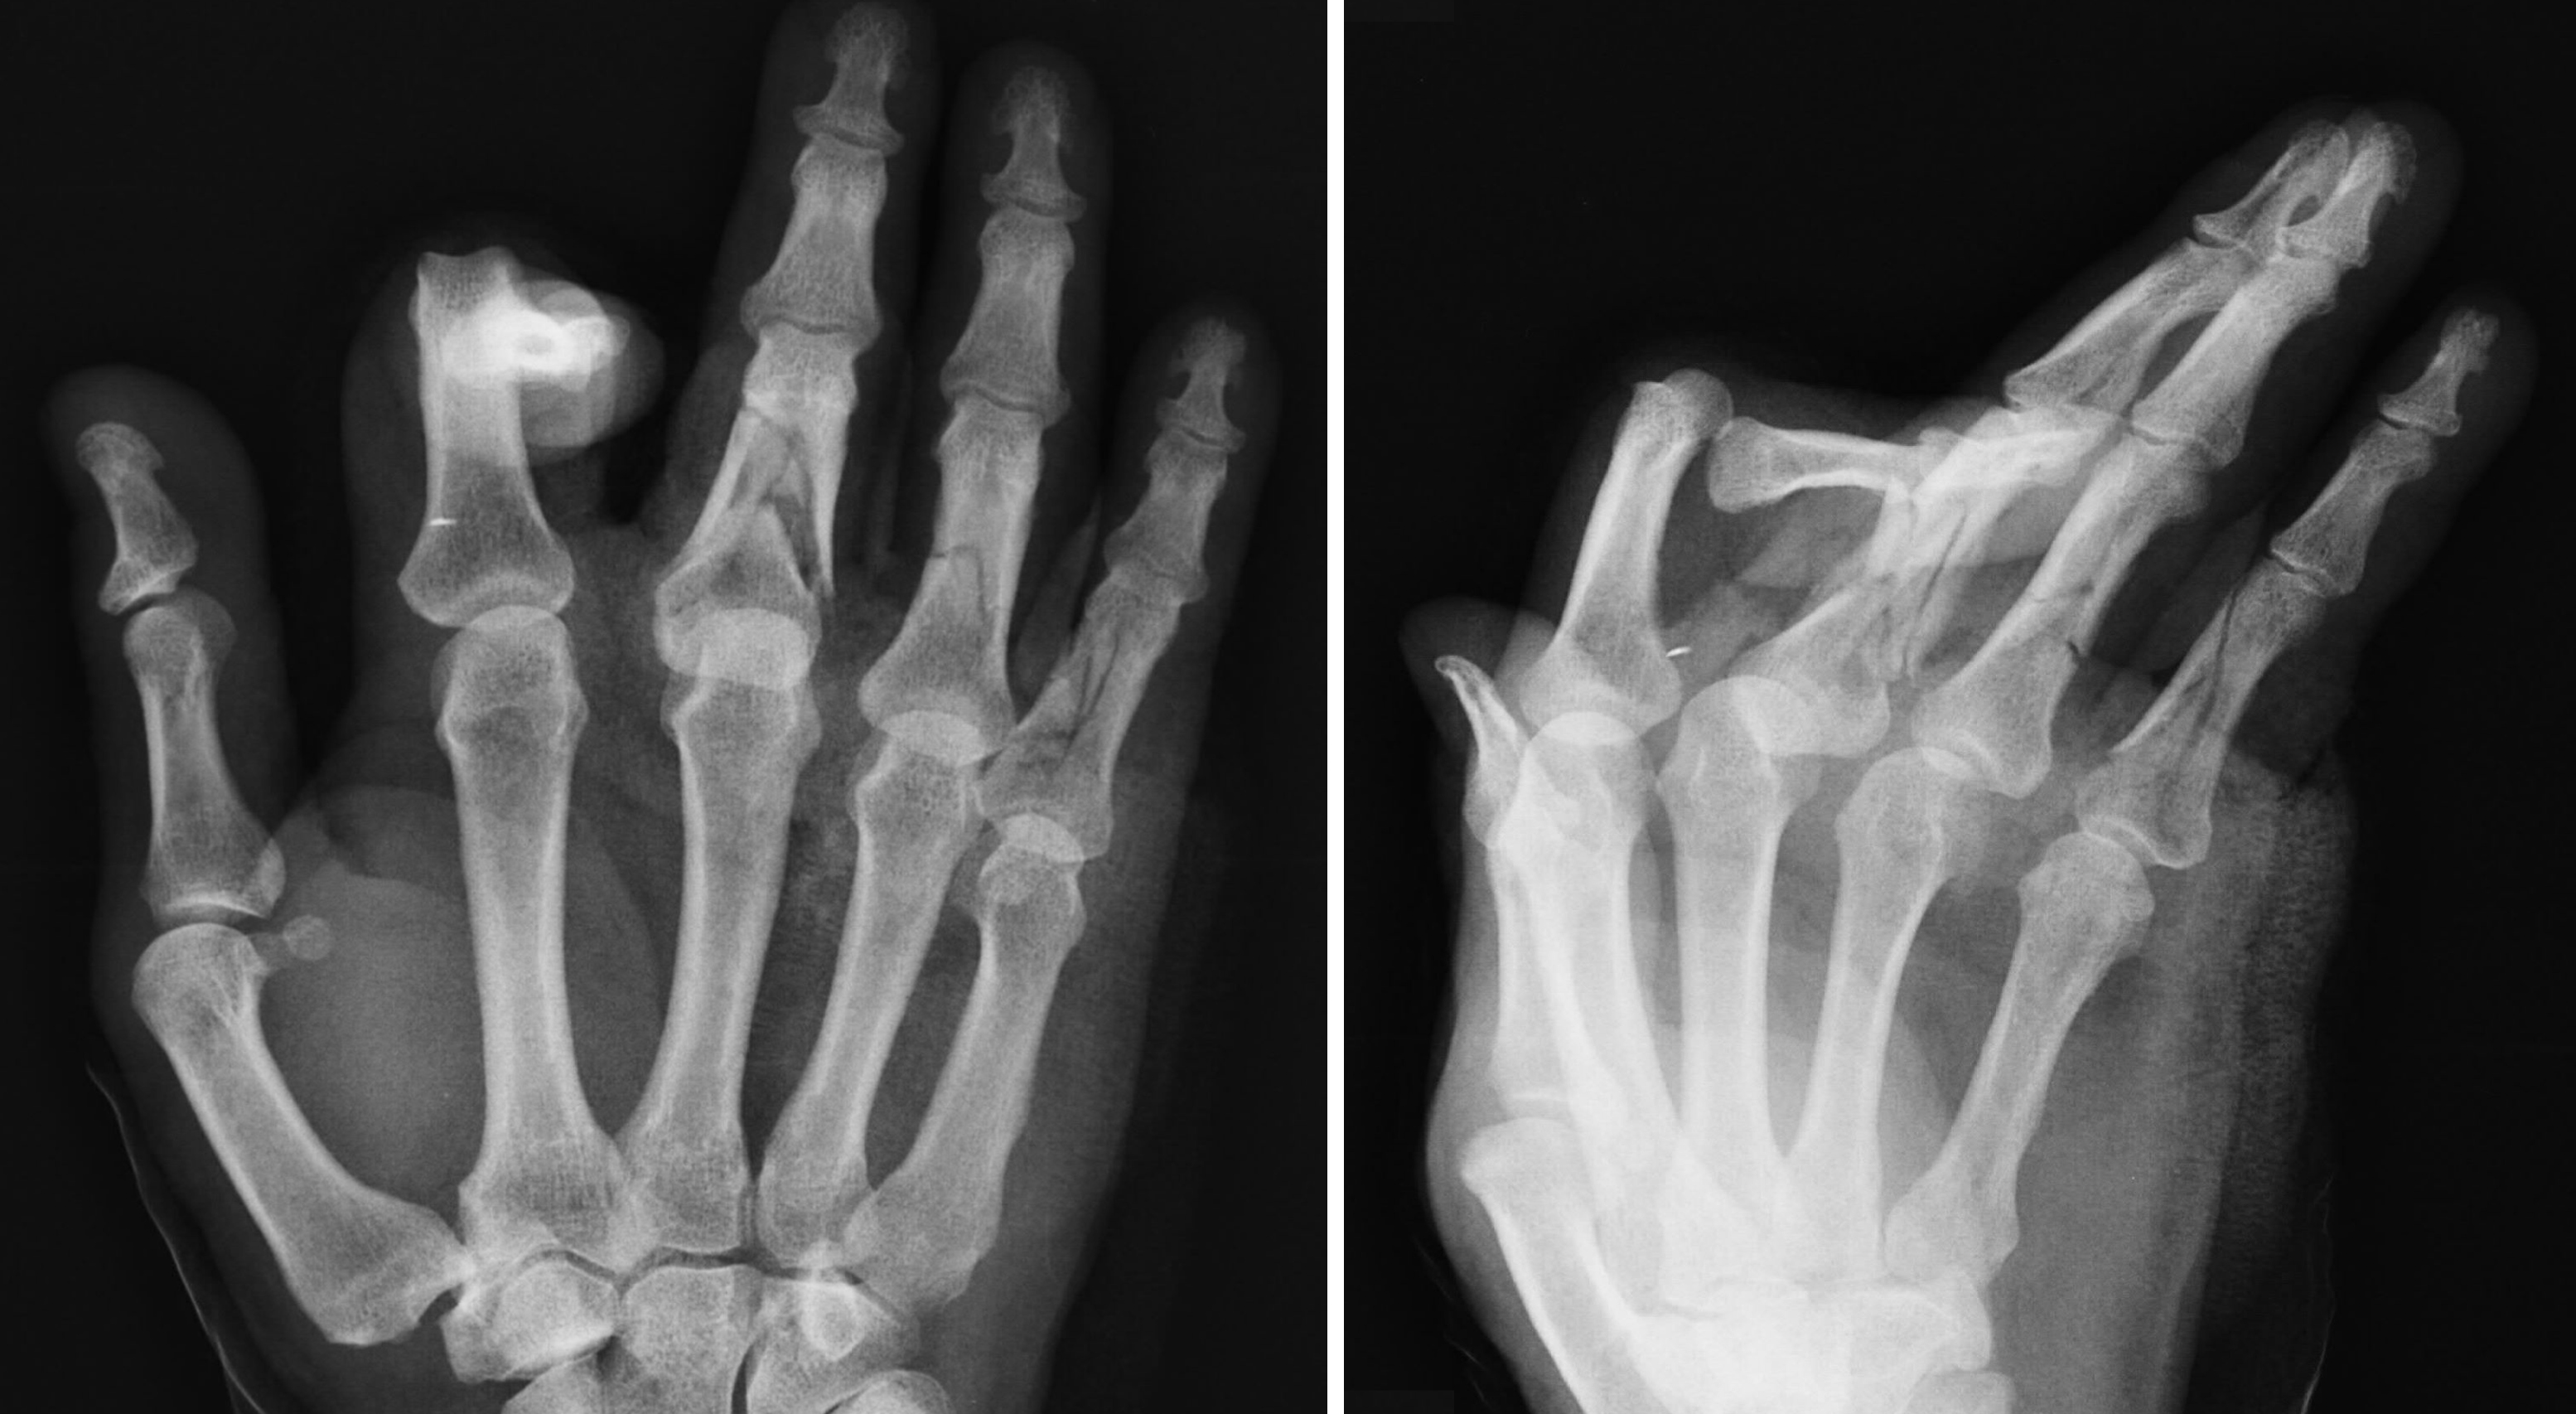 Multifragmentary Finger Fractures Resolution Through Insertion Of